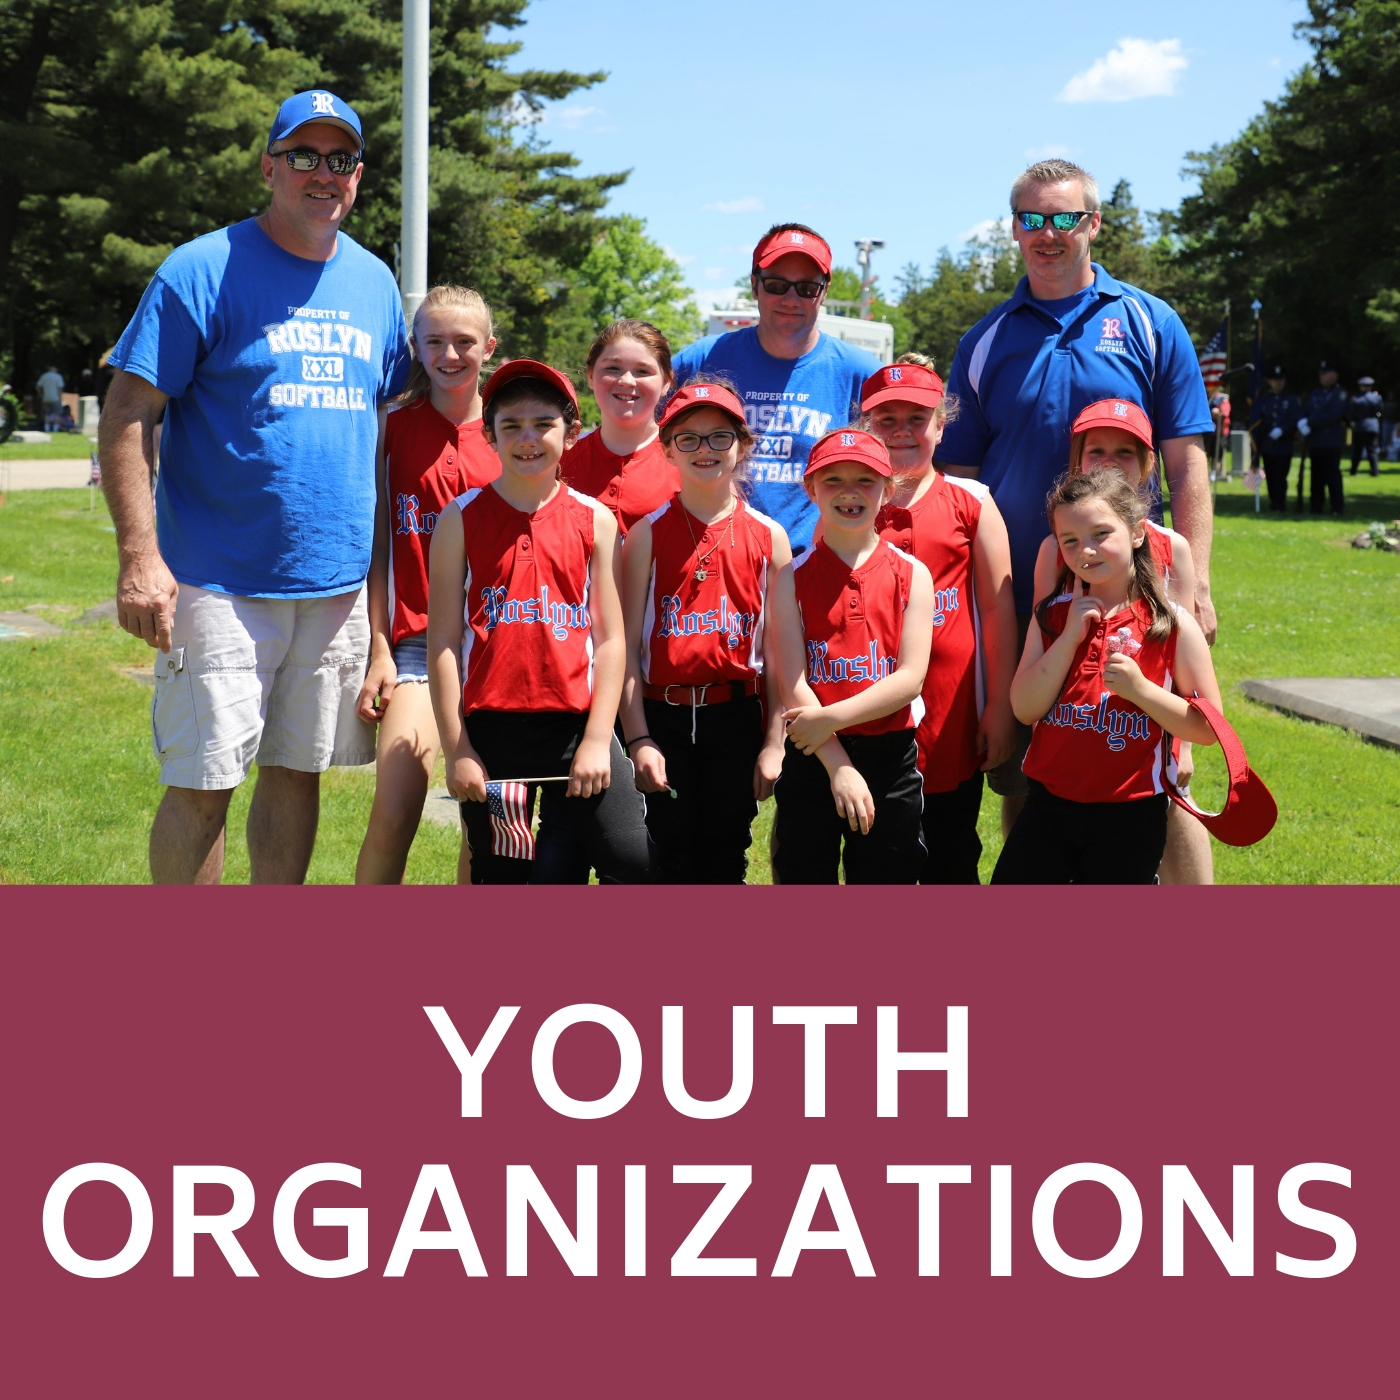 Youth Organization Icon that links to youth organizations webpage